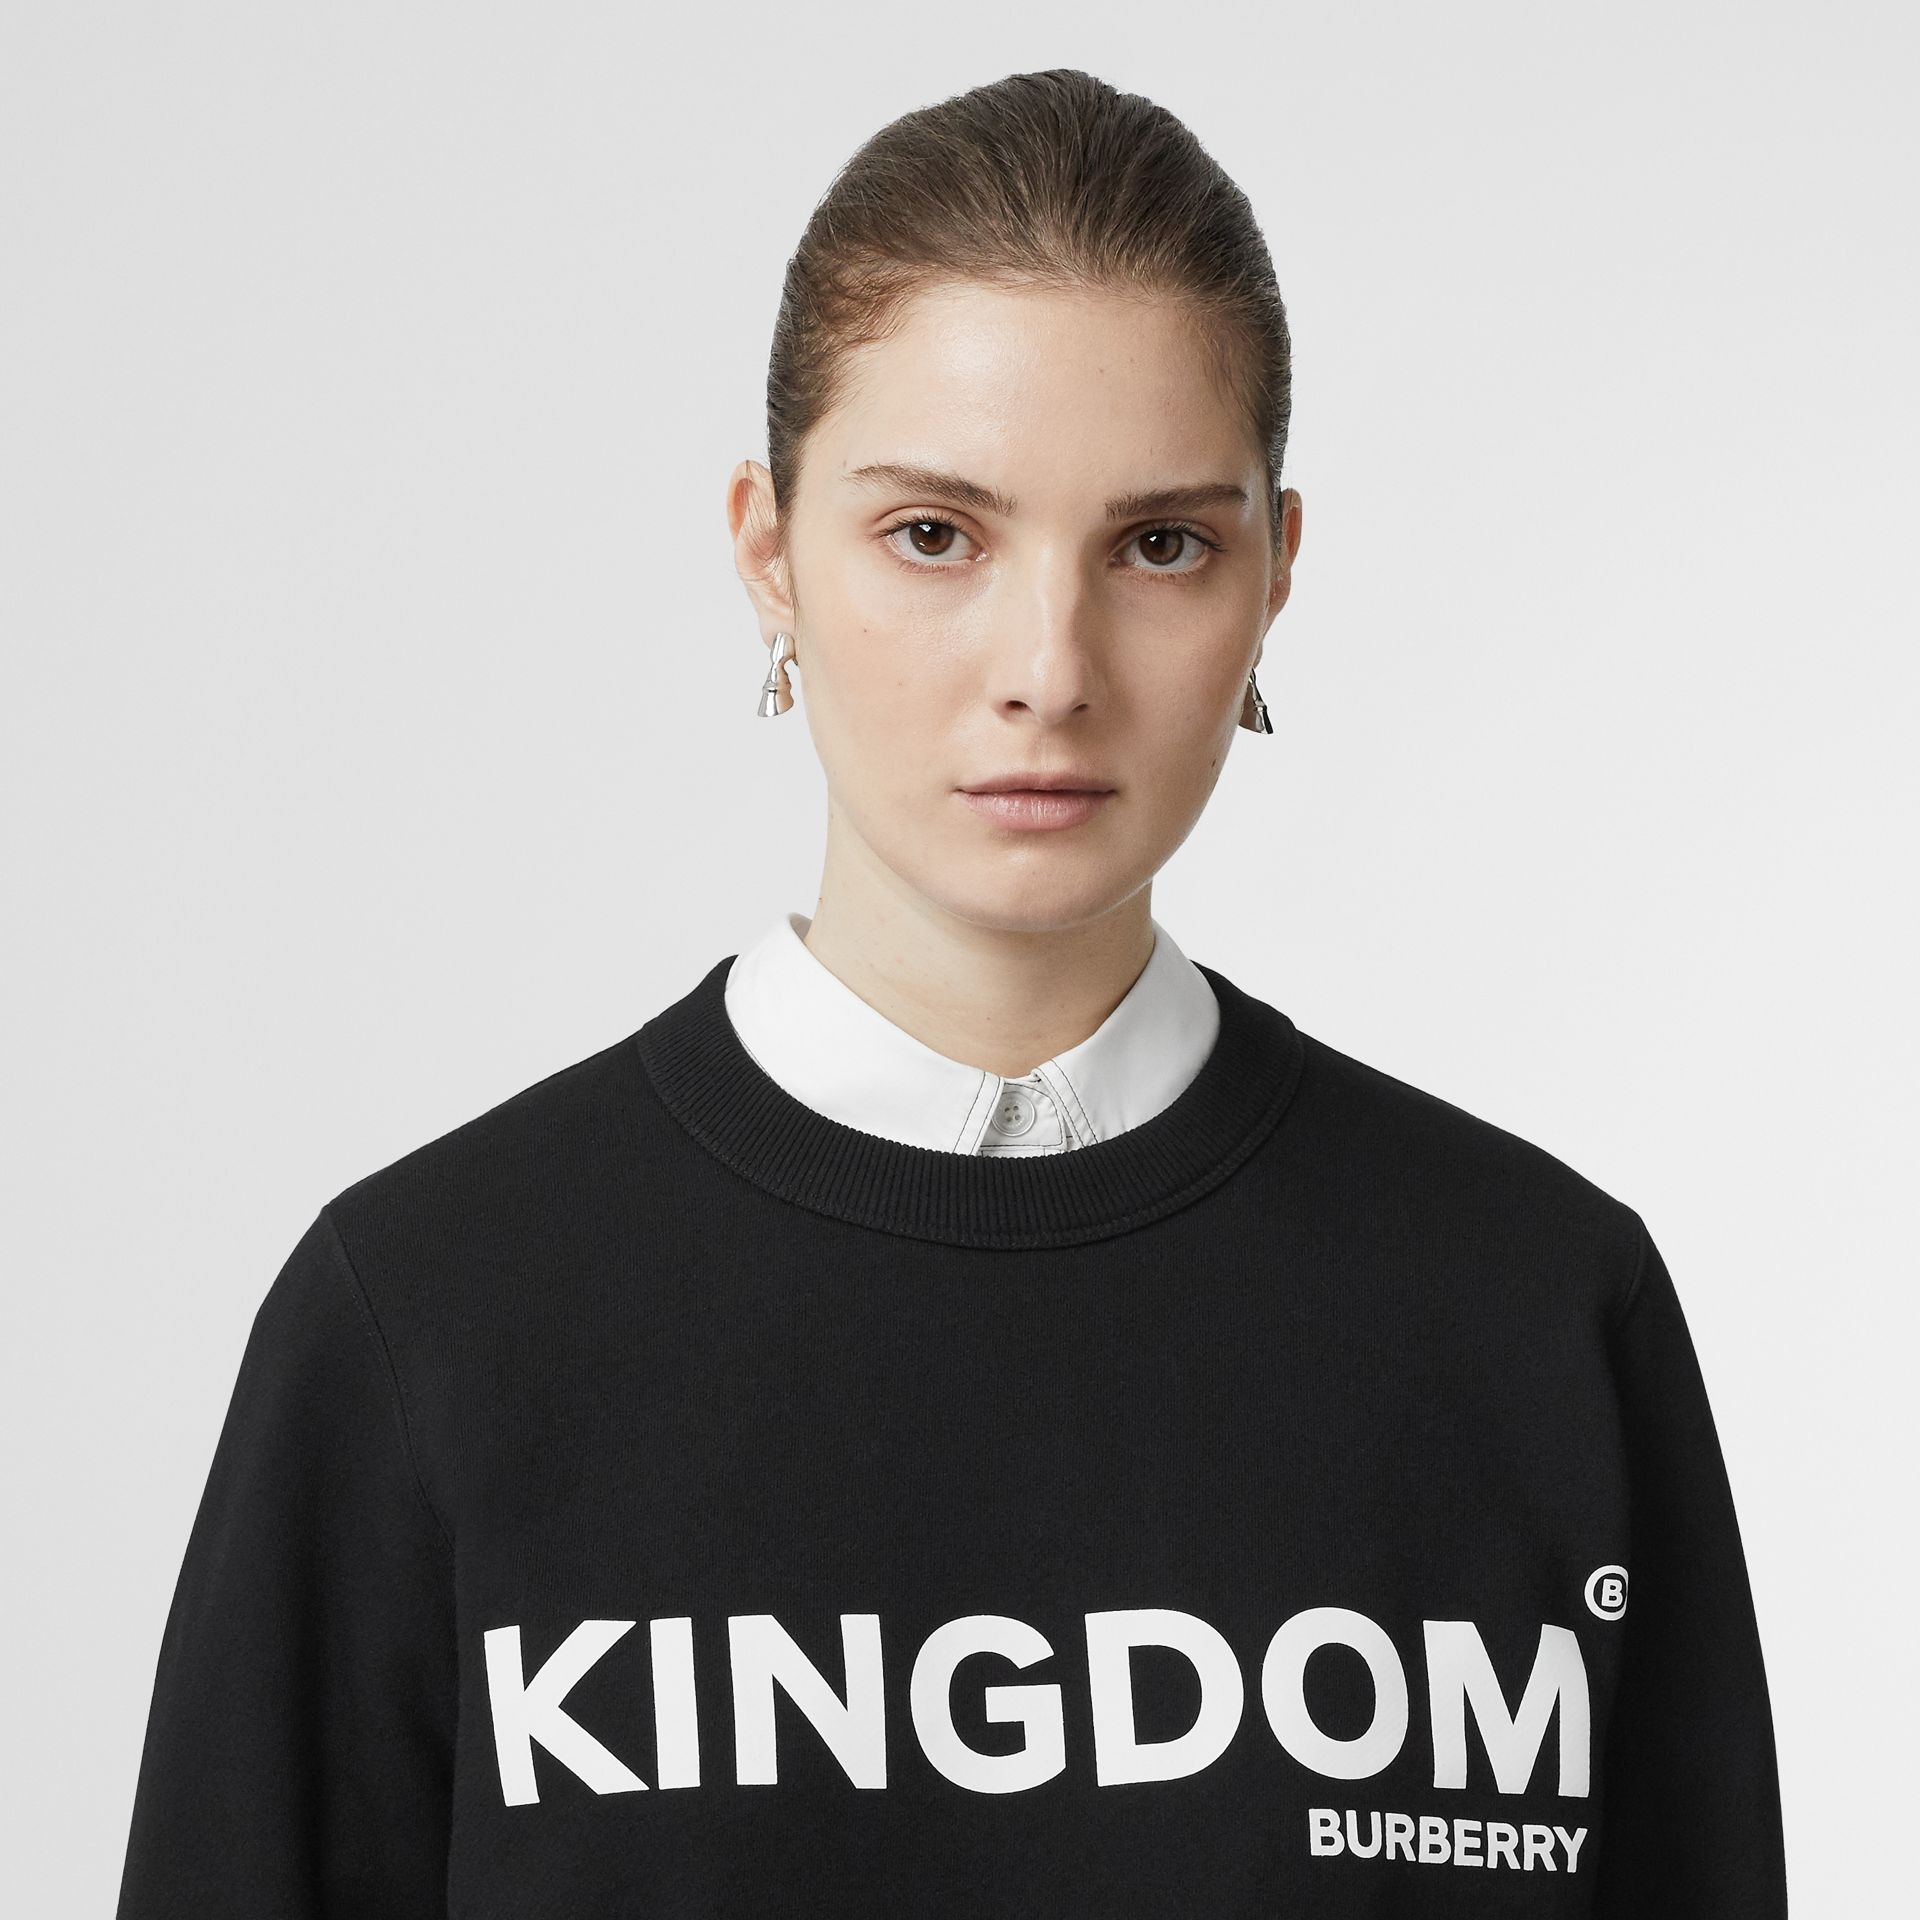 Kingdom Print Cotton Sweatshirt in Black - Women | Burberry - gallery image 1